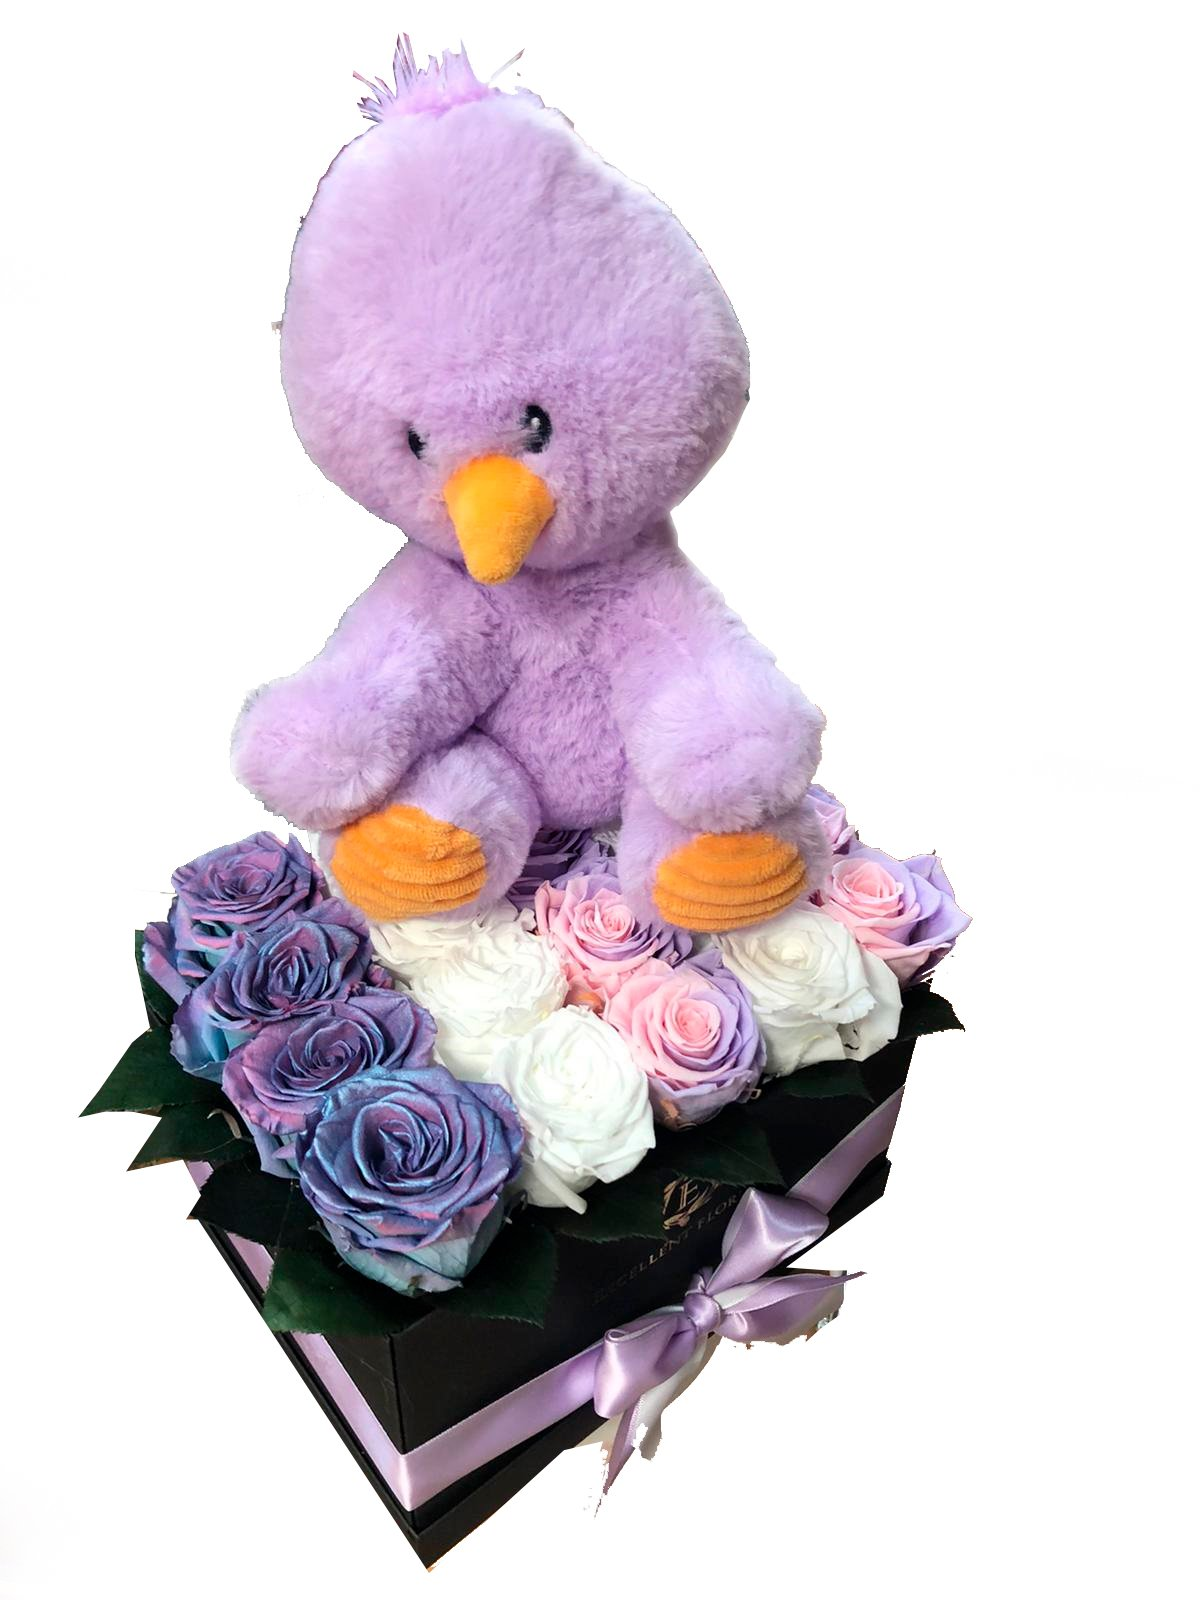 New Baby Purple roses and Toy